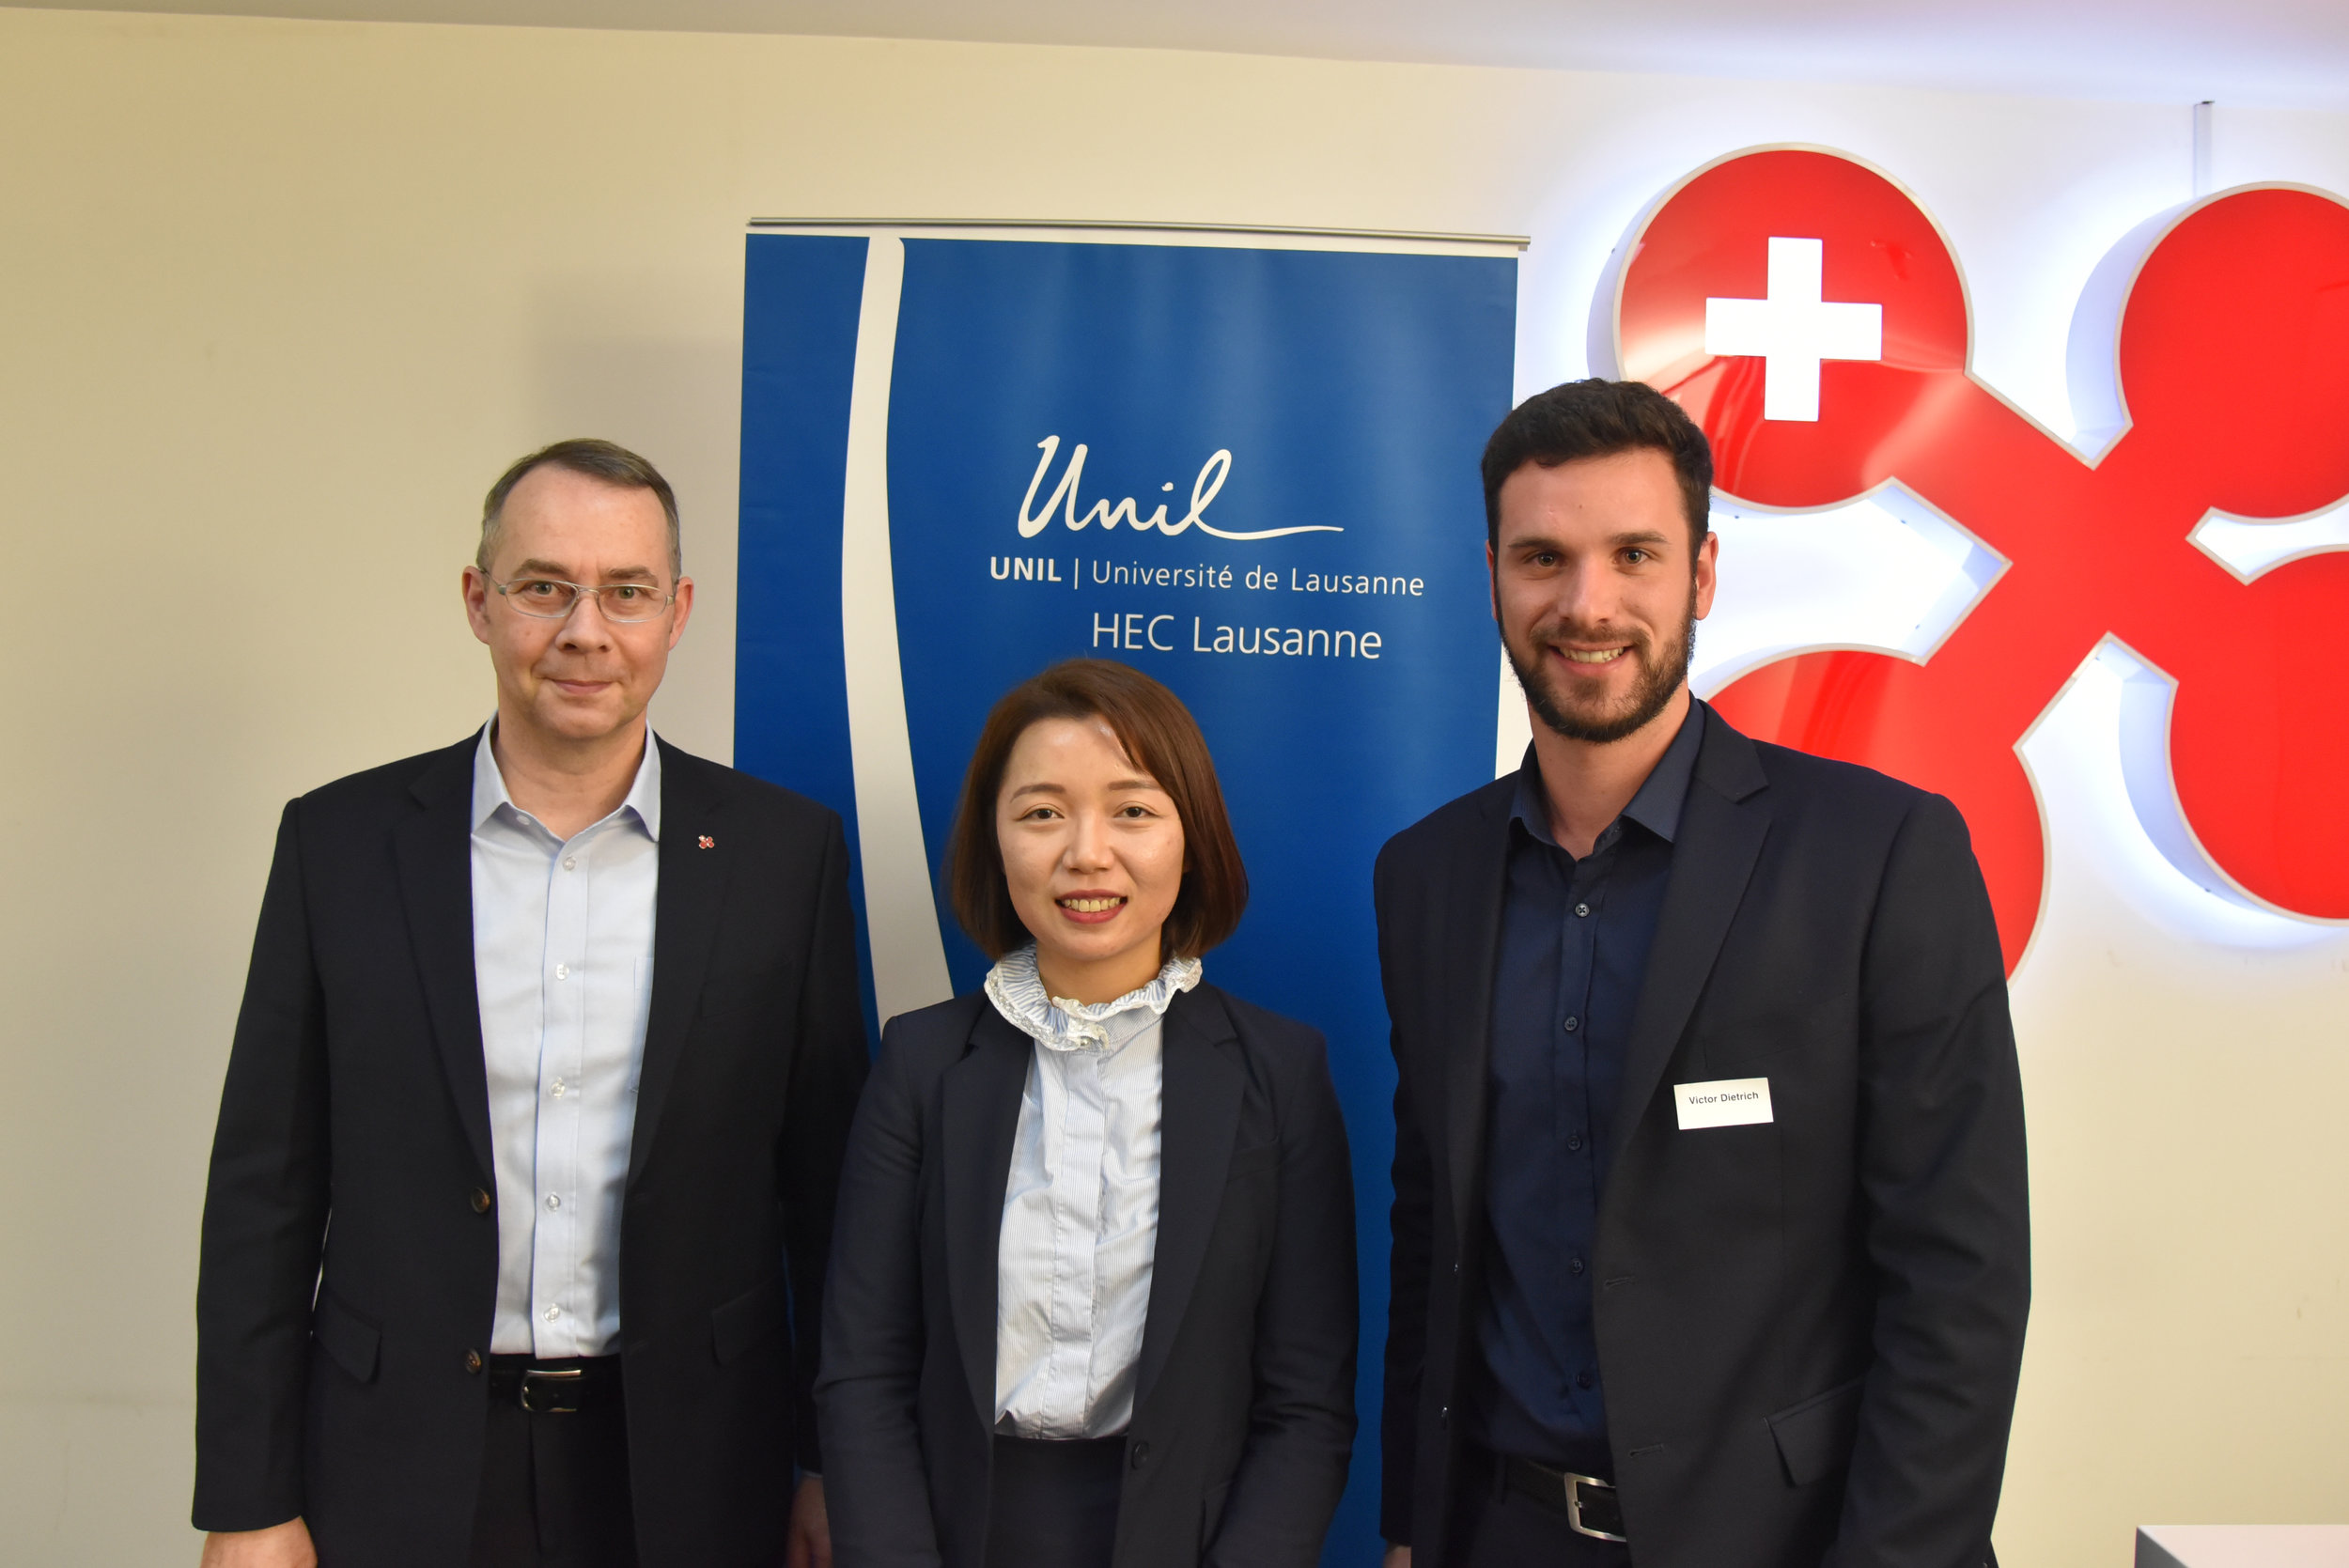 From left to right: Dr. Felix Moesner, Prof. Dr. Ying Liu and Victor Dietrich